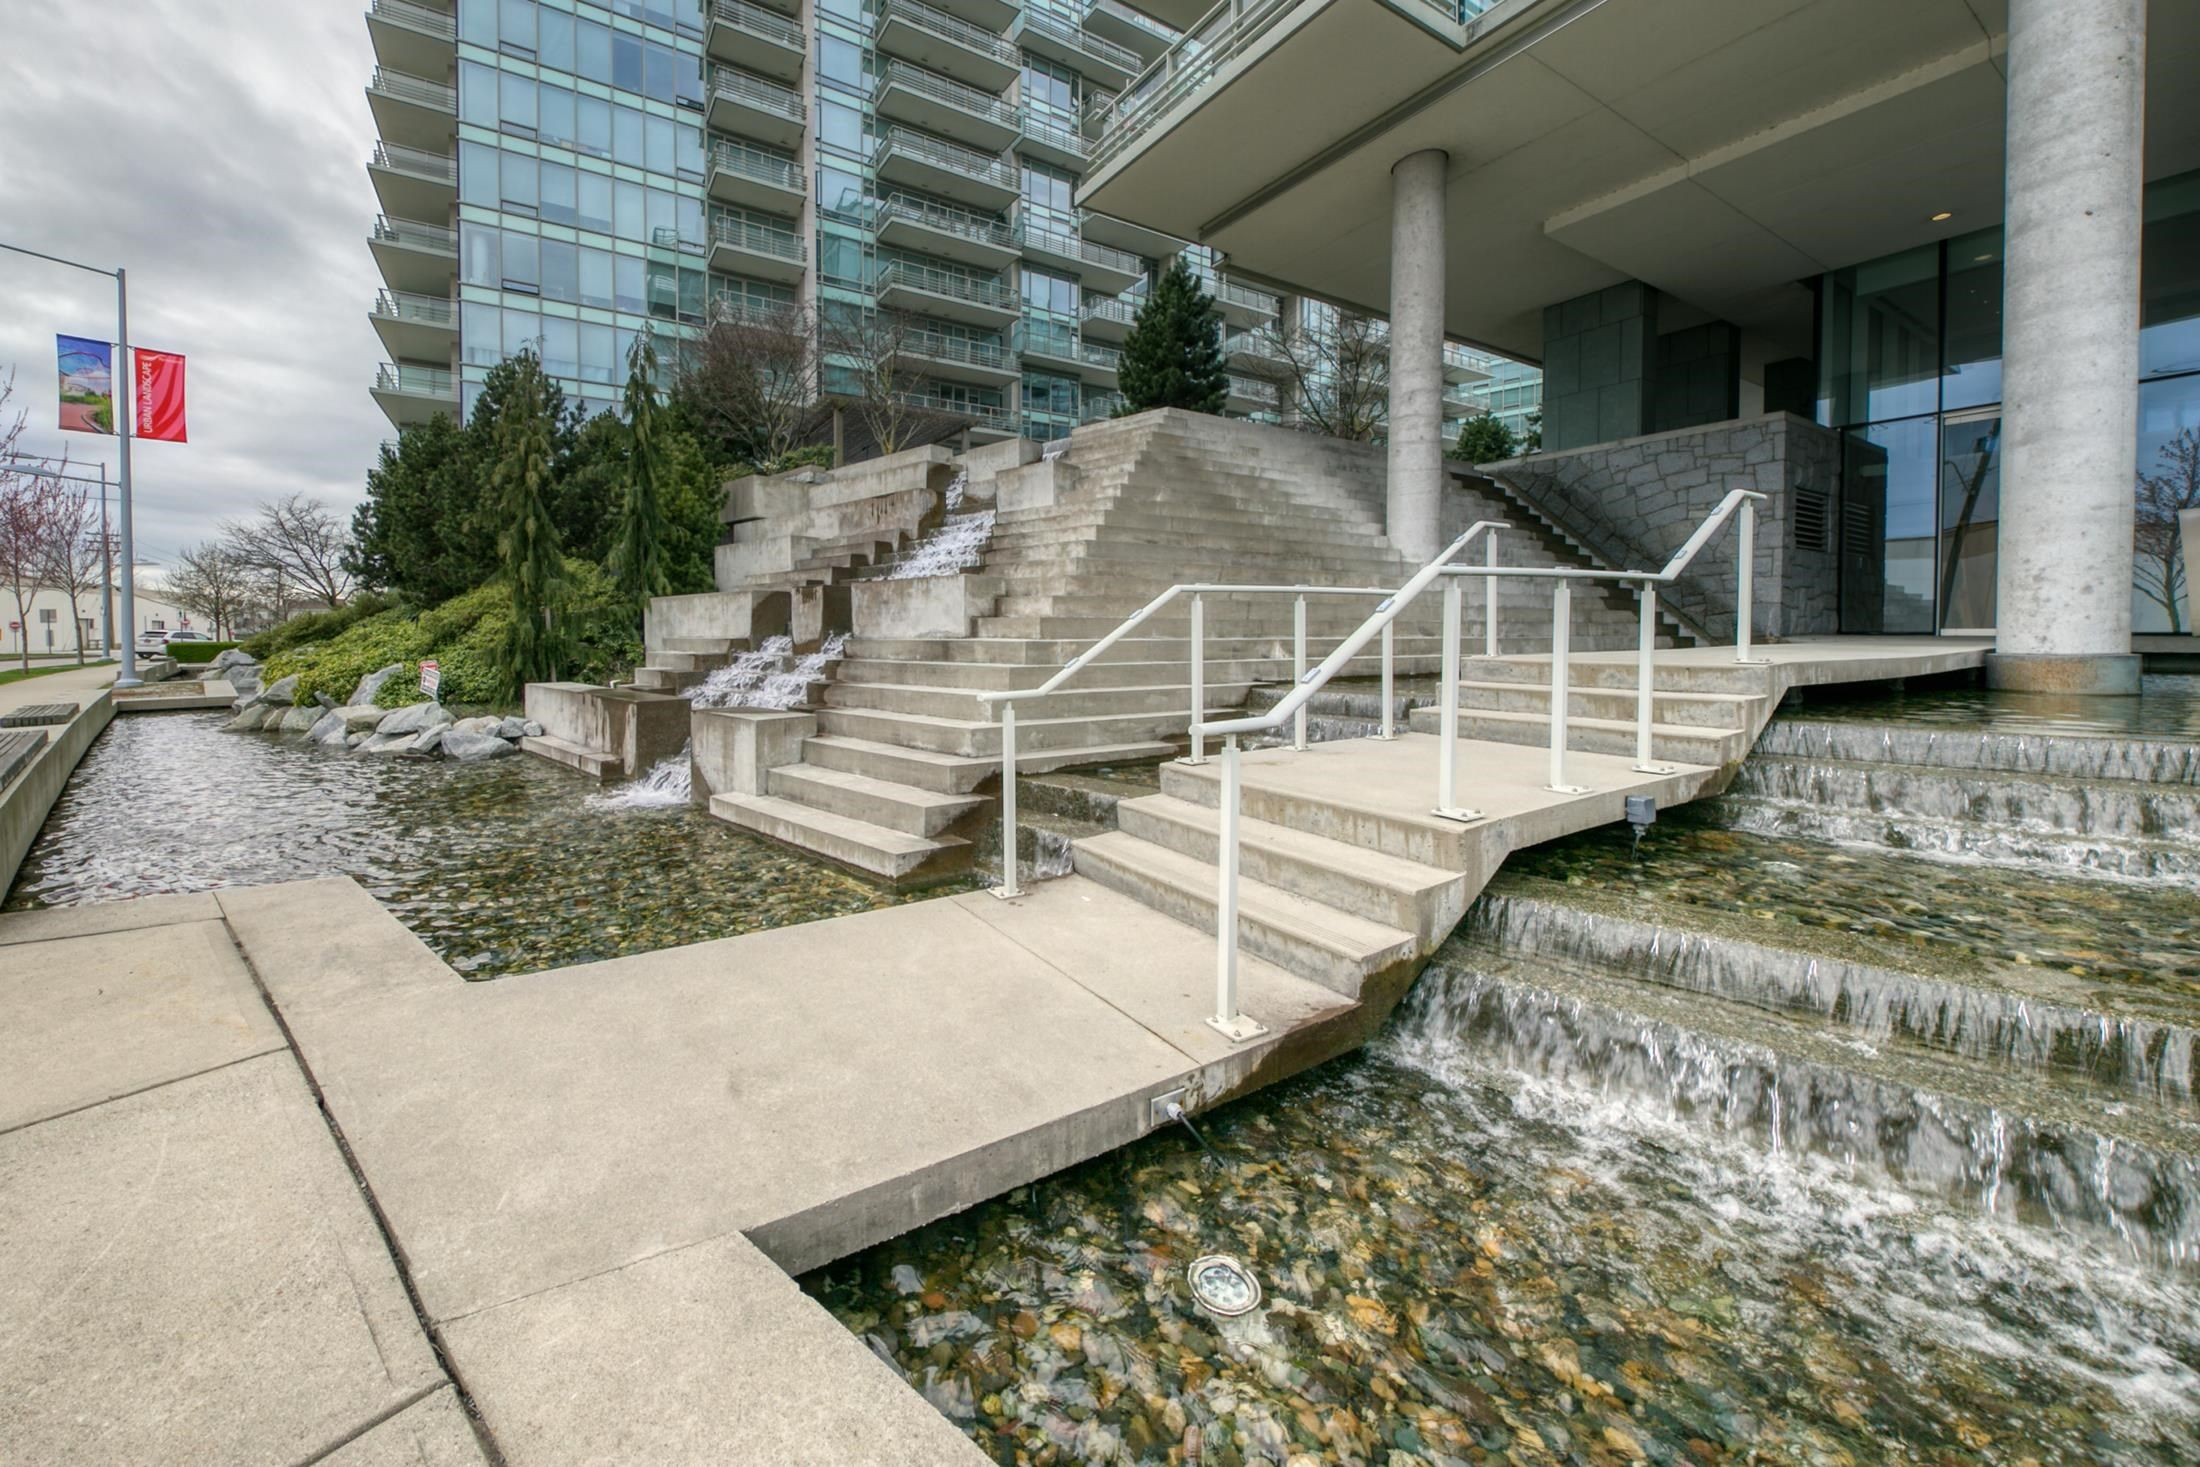 """Main Photo: 1006 5177 BRIGHOUSE Way in Richmond: Brighouse Condo for sale in """"River Green"""" : MLS®# R2617813"""